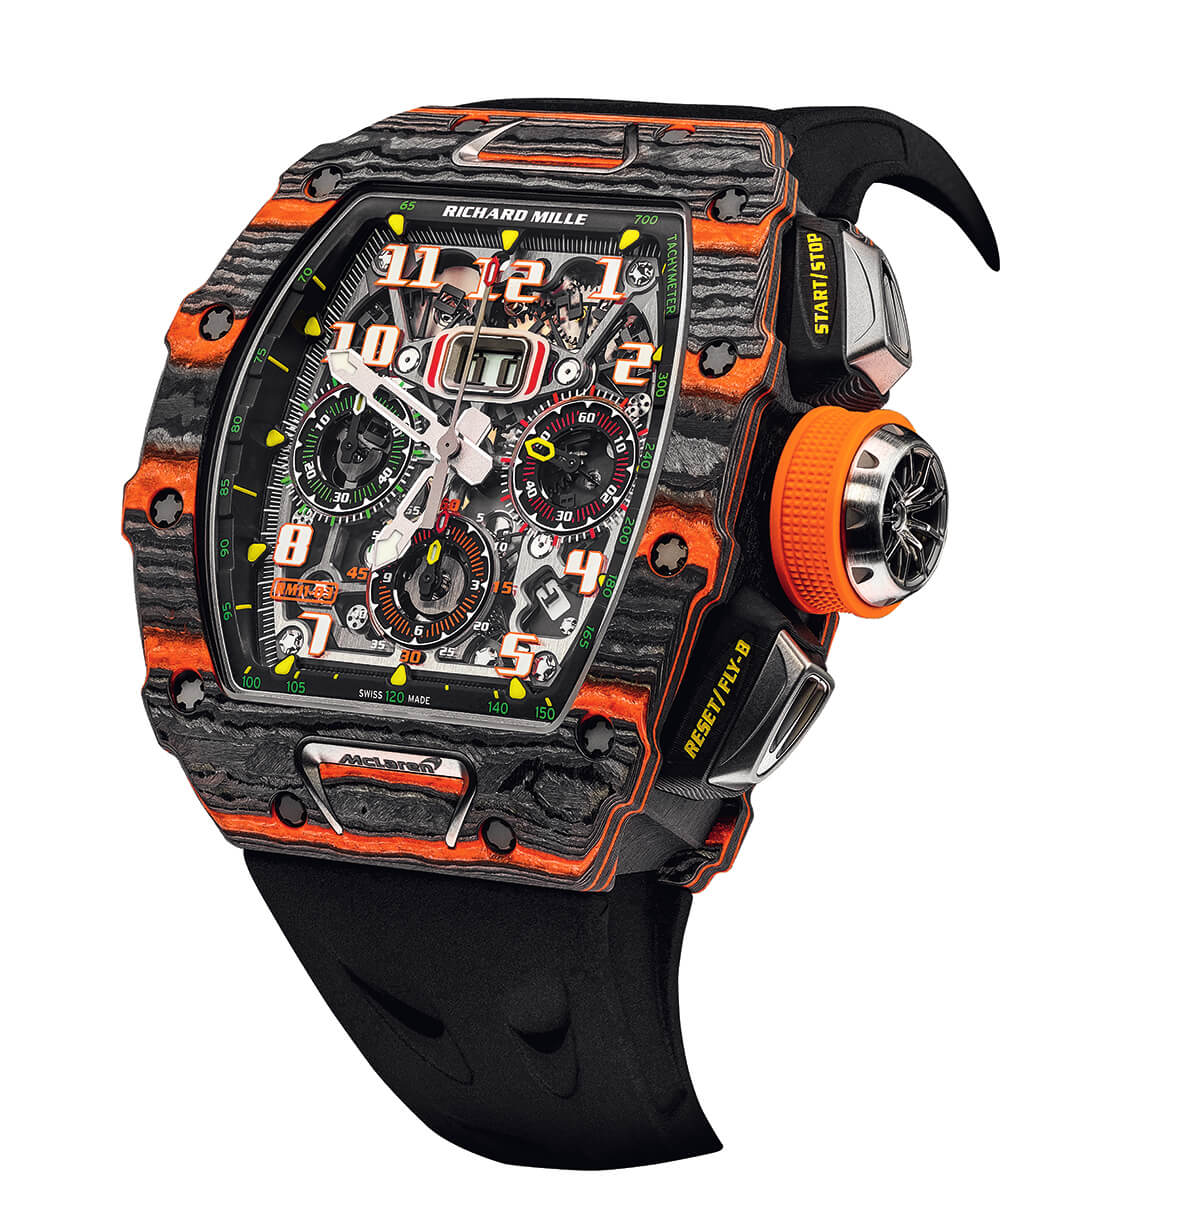 still life image of Richard Mille watch with black strap and large rectangular face